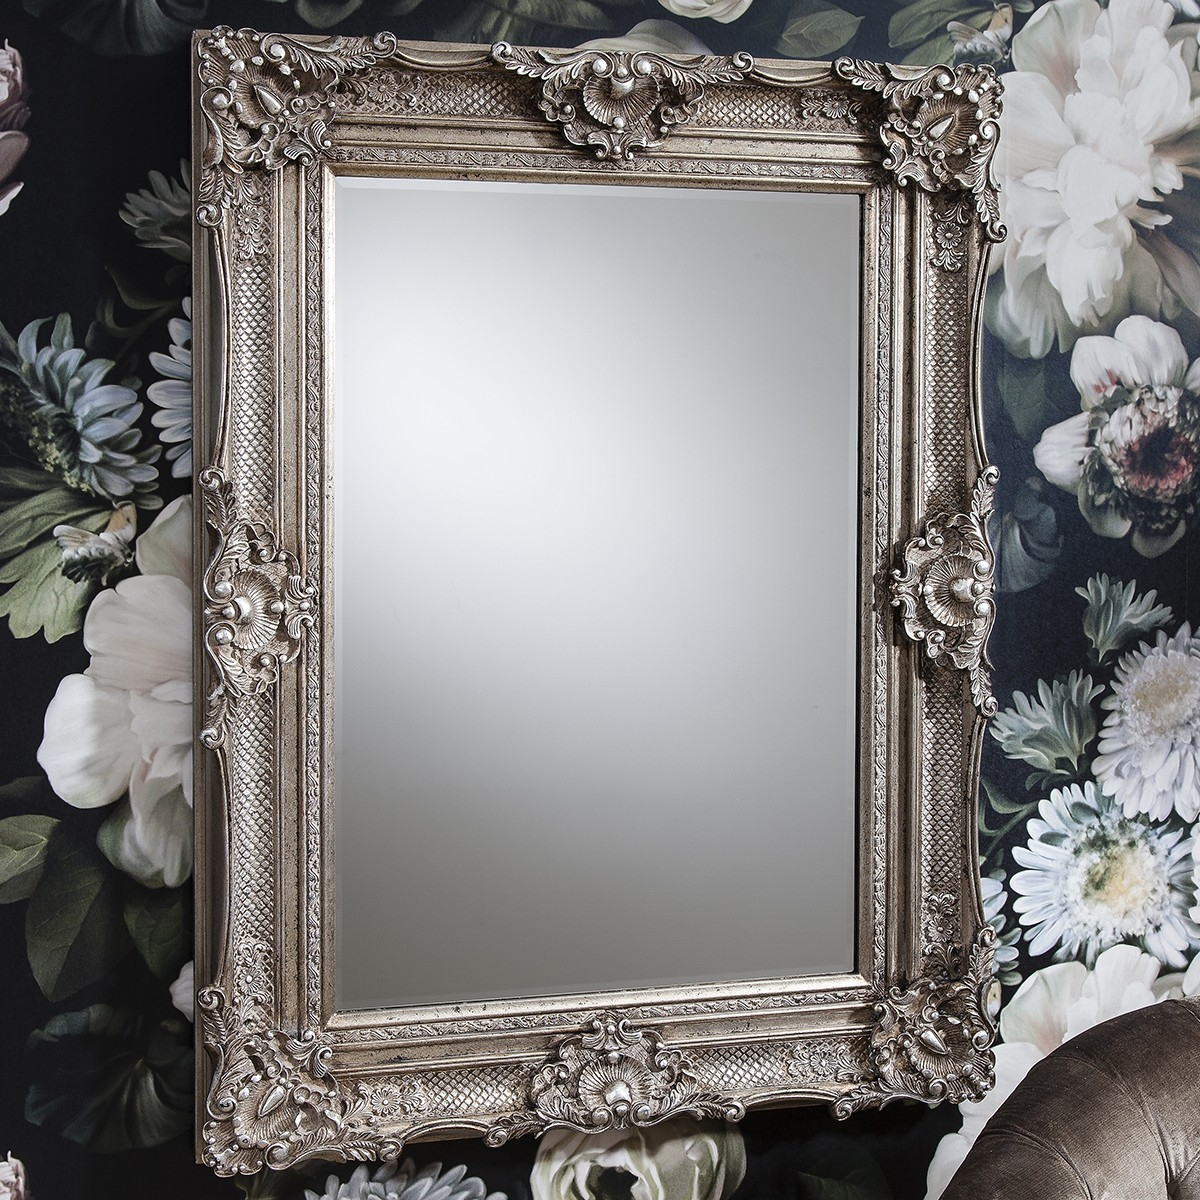 Devere Baroque Mirror From 999999 Luxury Wall Mirrors With Regard To Silver Baroque Mirror (Image 7 of 15)